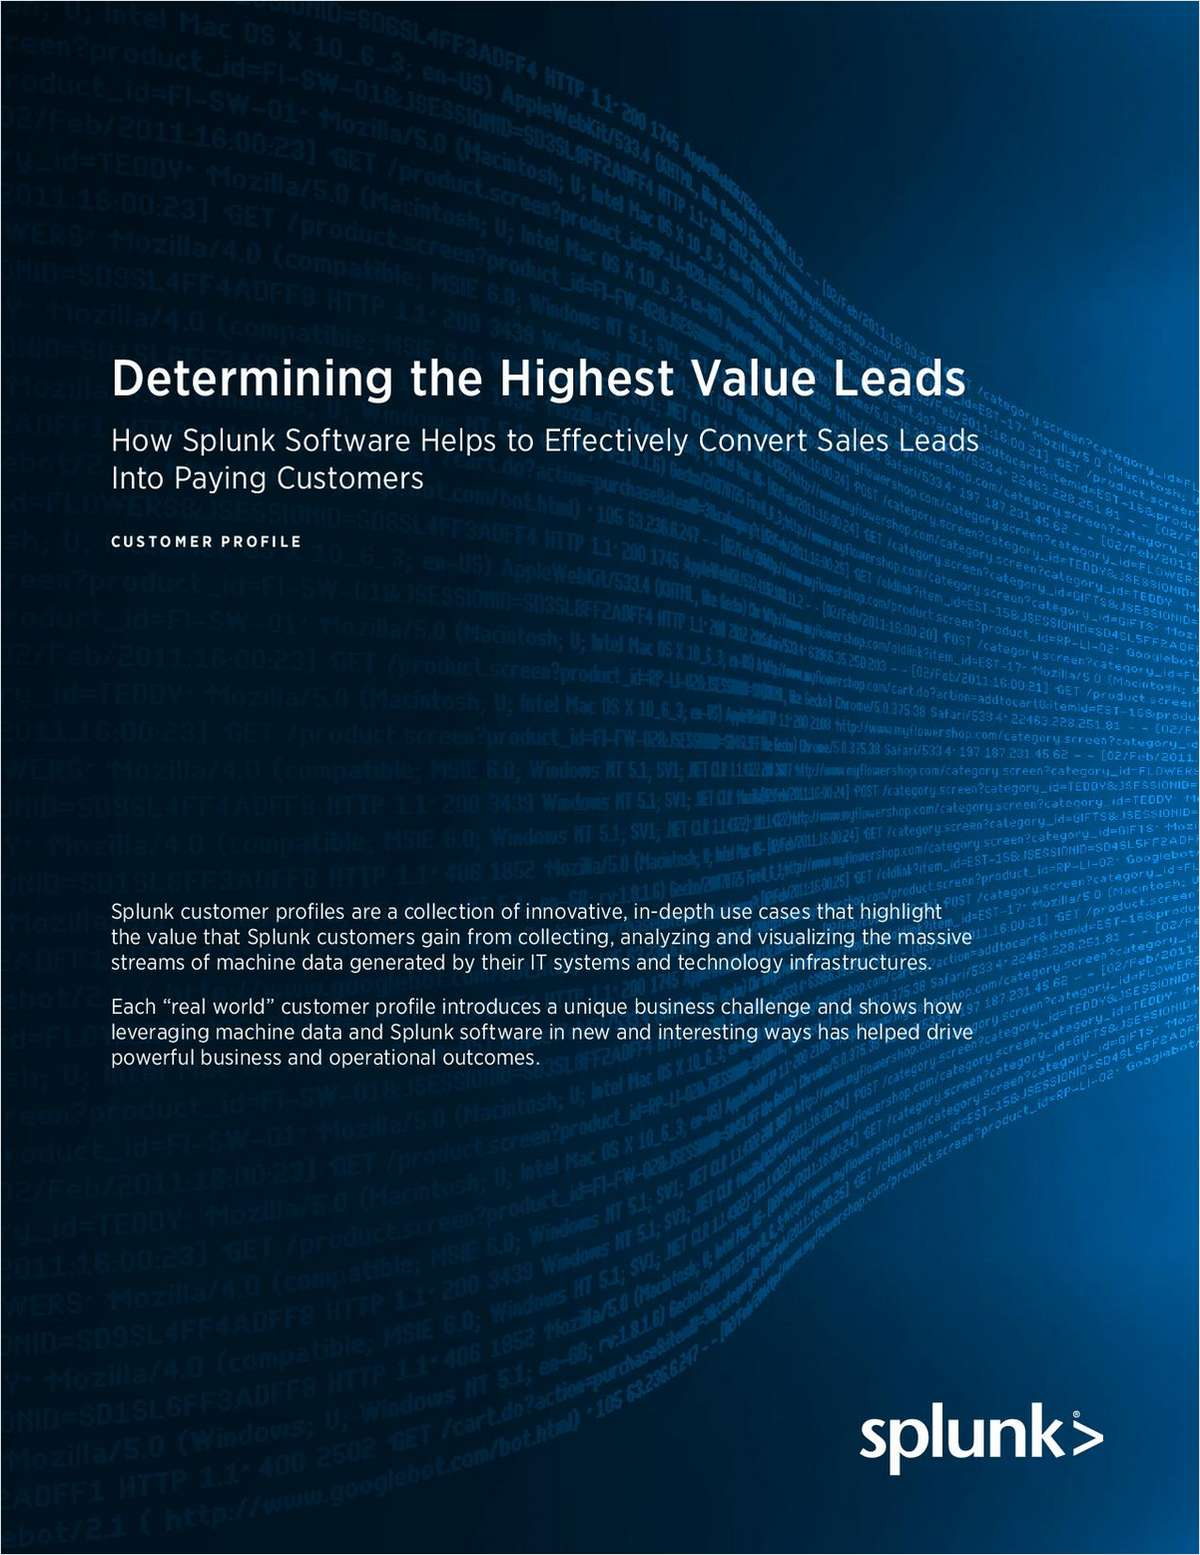 Determining the Highest Value Leads